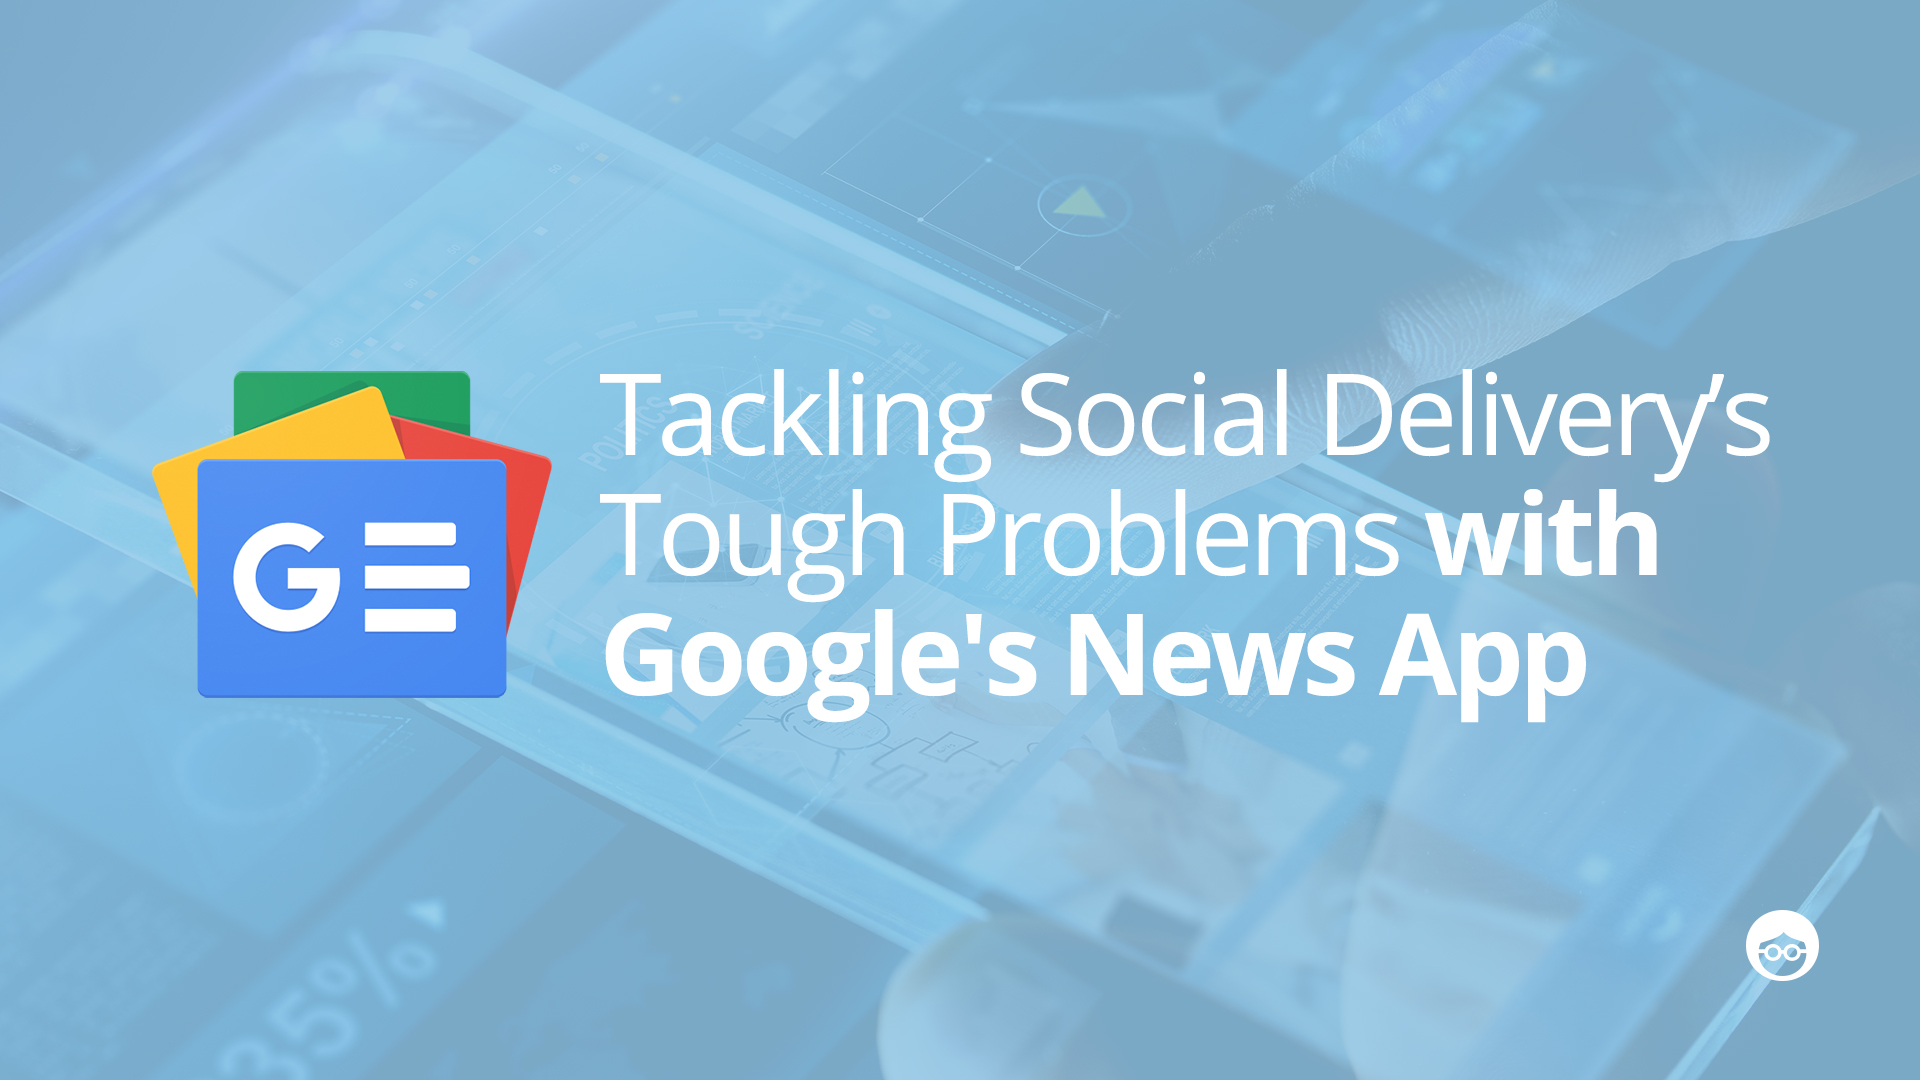 How Google's News App is tackling some of social delivery's tough problems